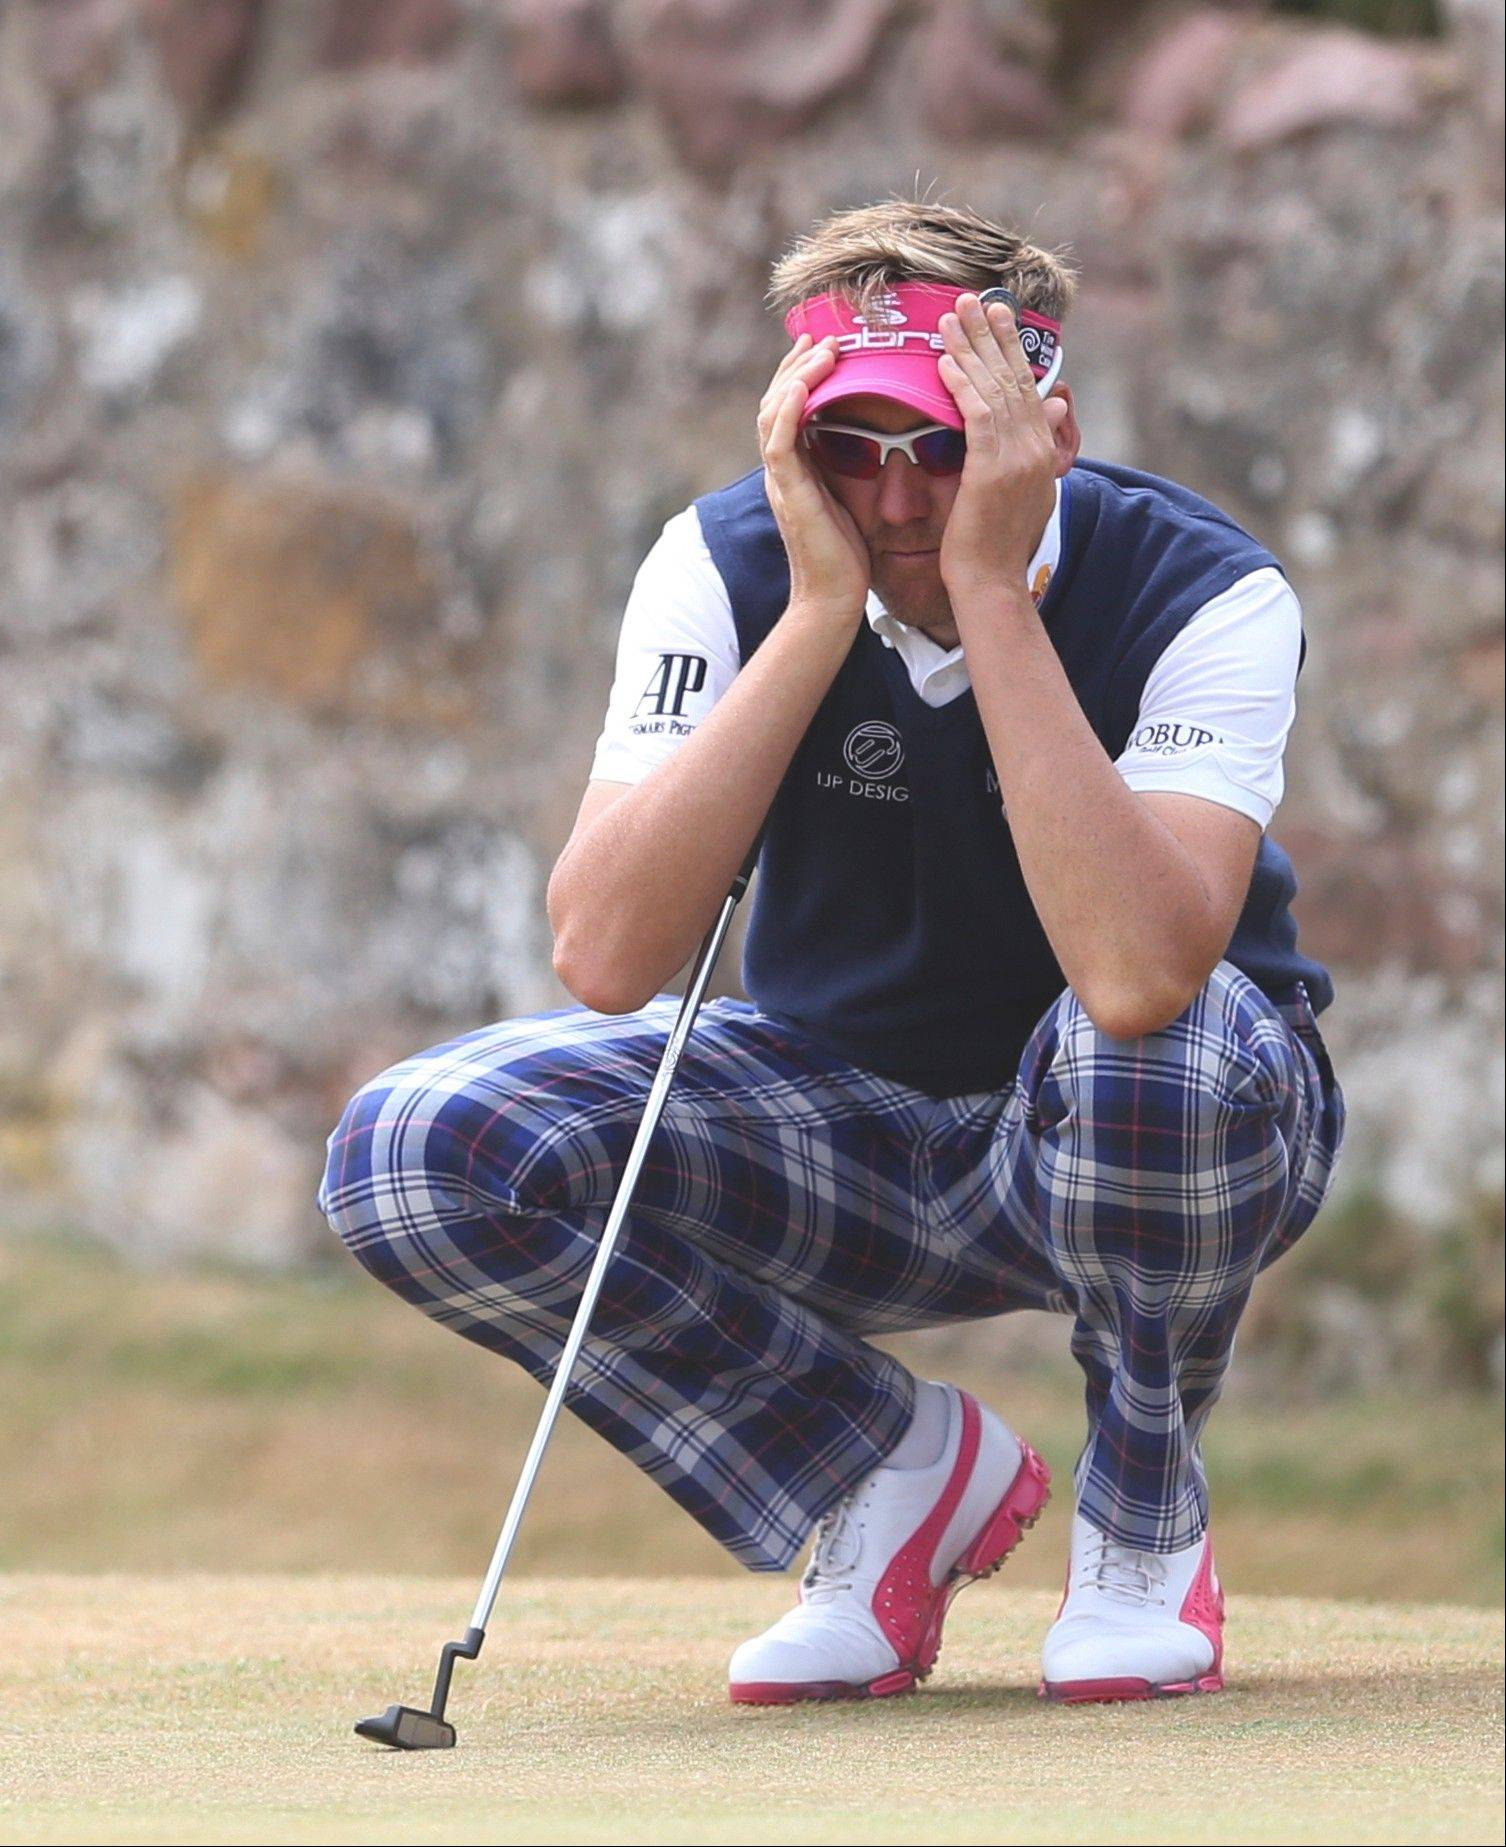 Ian Poulter of England make look perplexed here during the the final round of the British Open Championship at Muirfield, Scotland, but he finished in a tie for third. He also scored big with two quotes in Bob Frisk's annual sports quotes column.